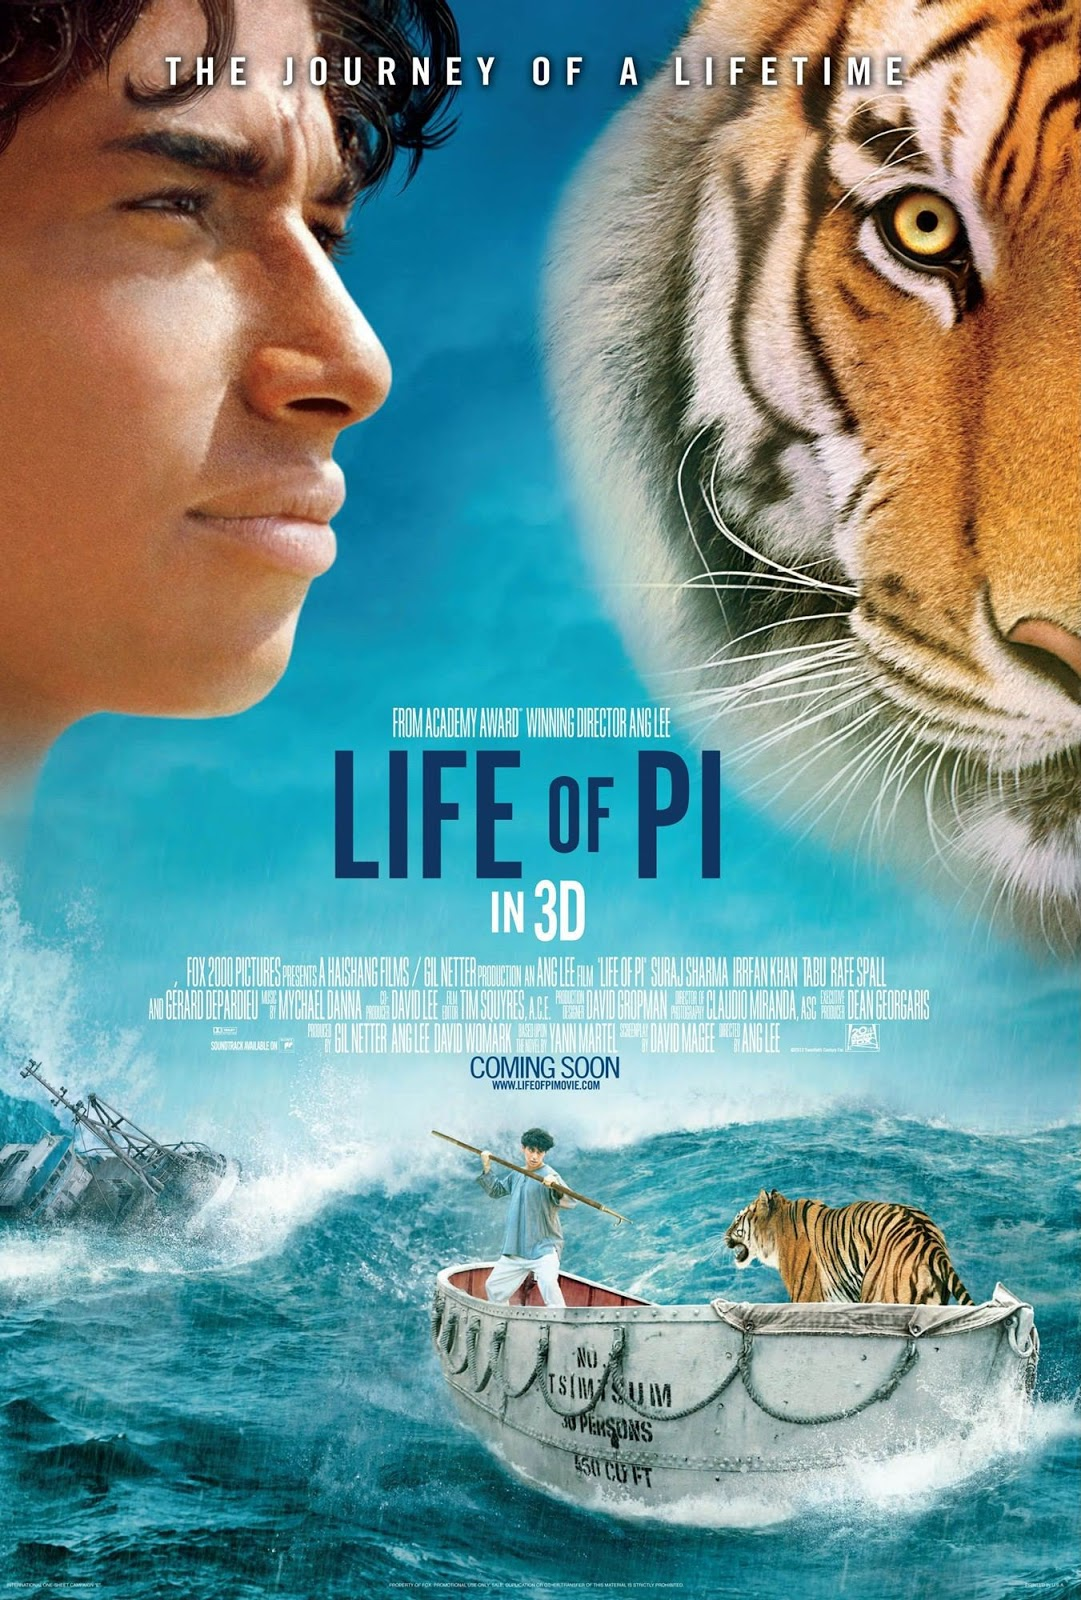 a comprehensive review of the life of pi a novel by yann martel By yann martel - life of pi (new edition)  even the most outrageous scenario with plausible life (new york times book review) martel's engaging characterization.